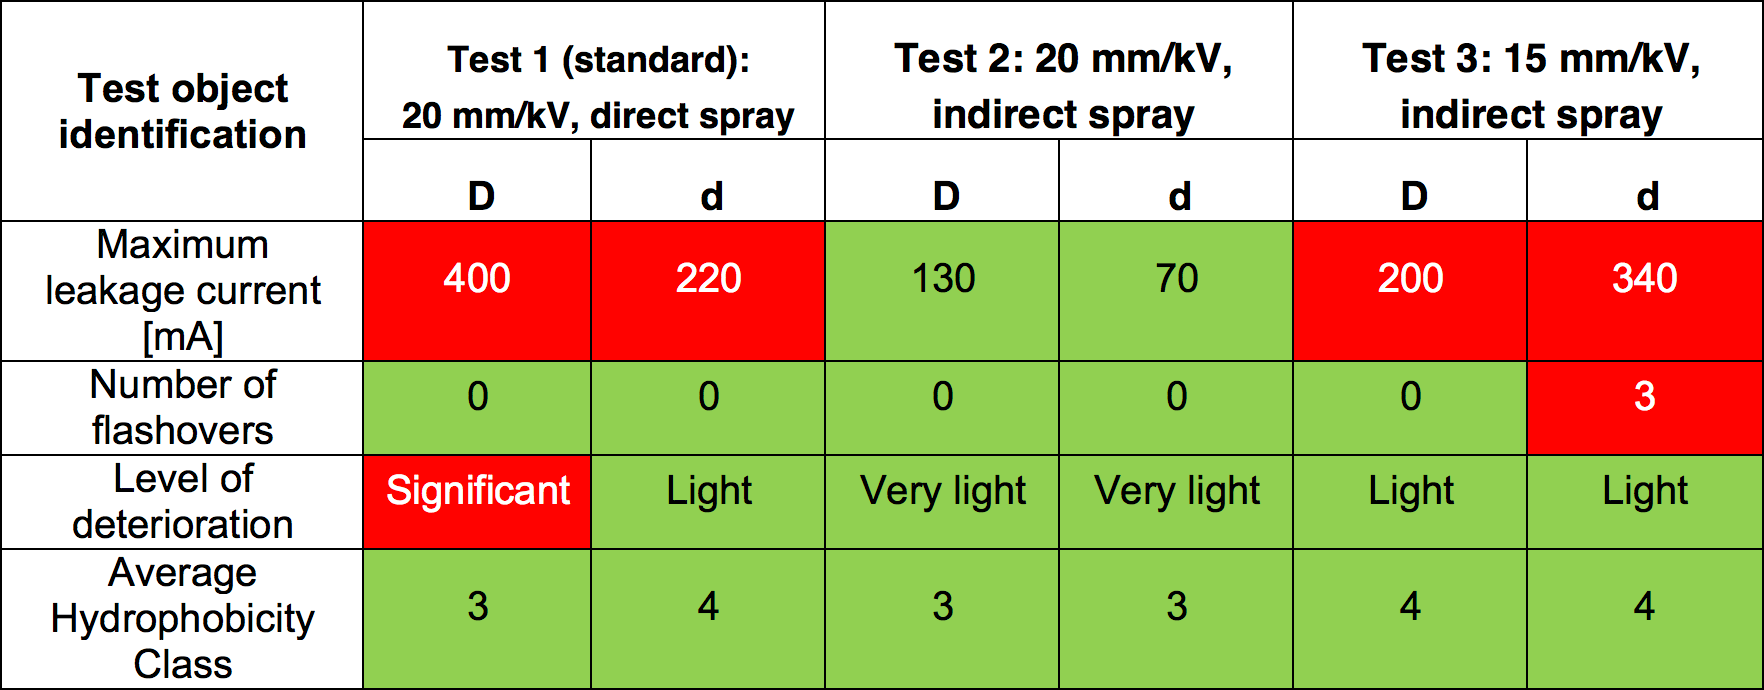 [object object] Verifying Corona, Pollution & Icing Performance of Insulation Structures Summary of Test Results Results for Insulators with Large Diameters Shown as  E2 80 9CD E2 80 9D for Smaller Diameters as  E2 80 9Cd E2 80 9D